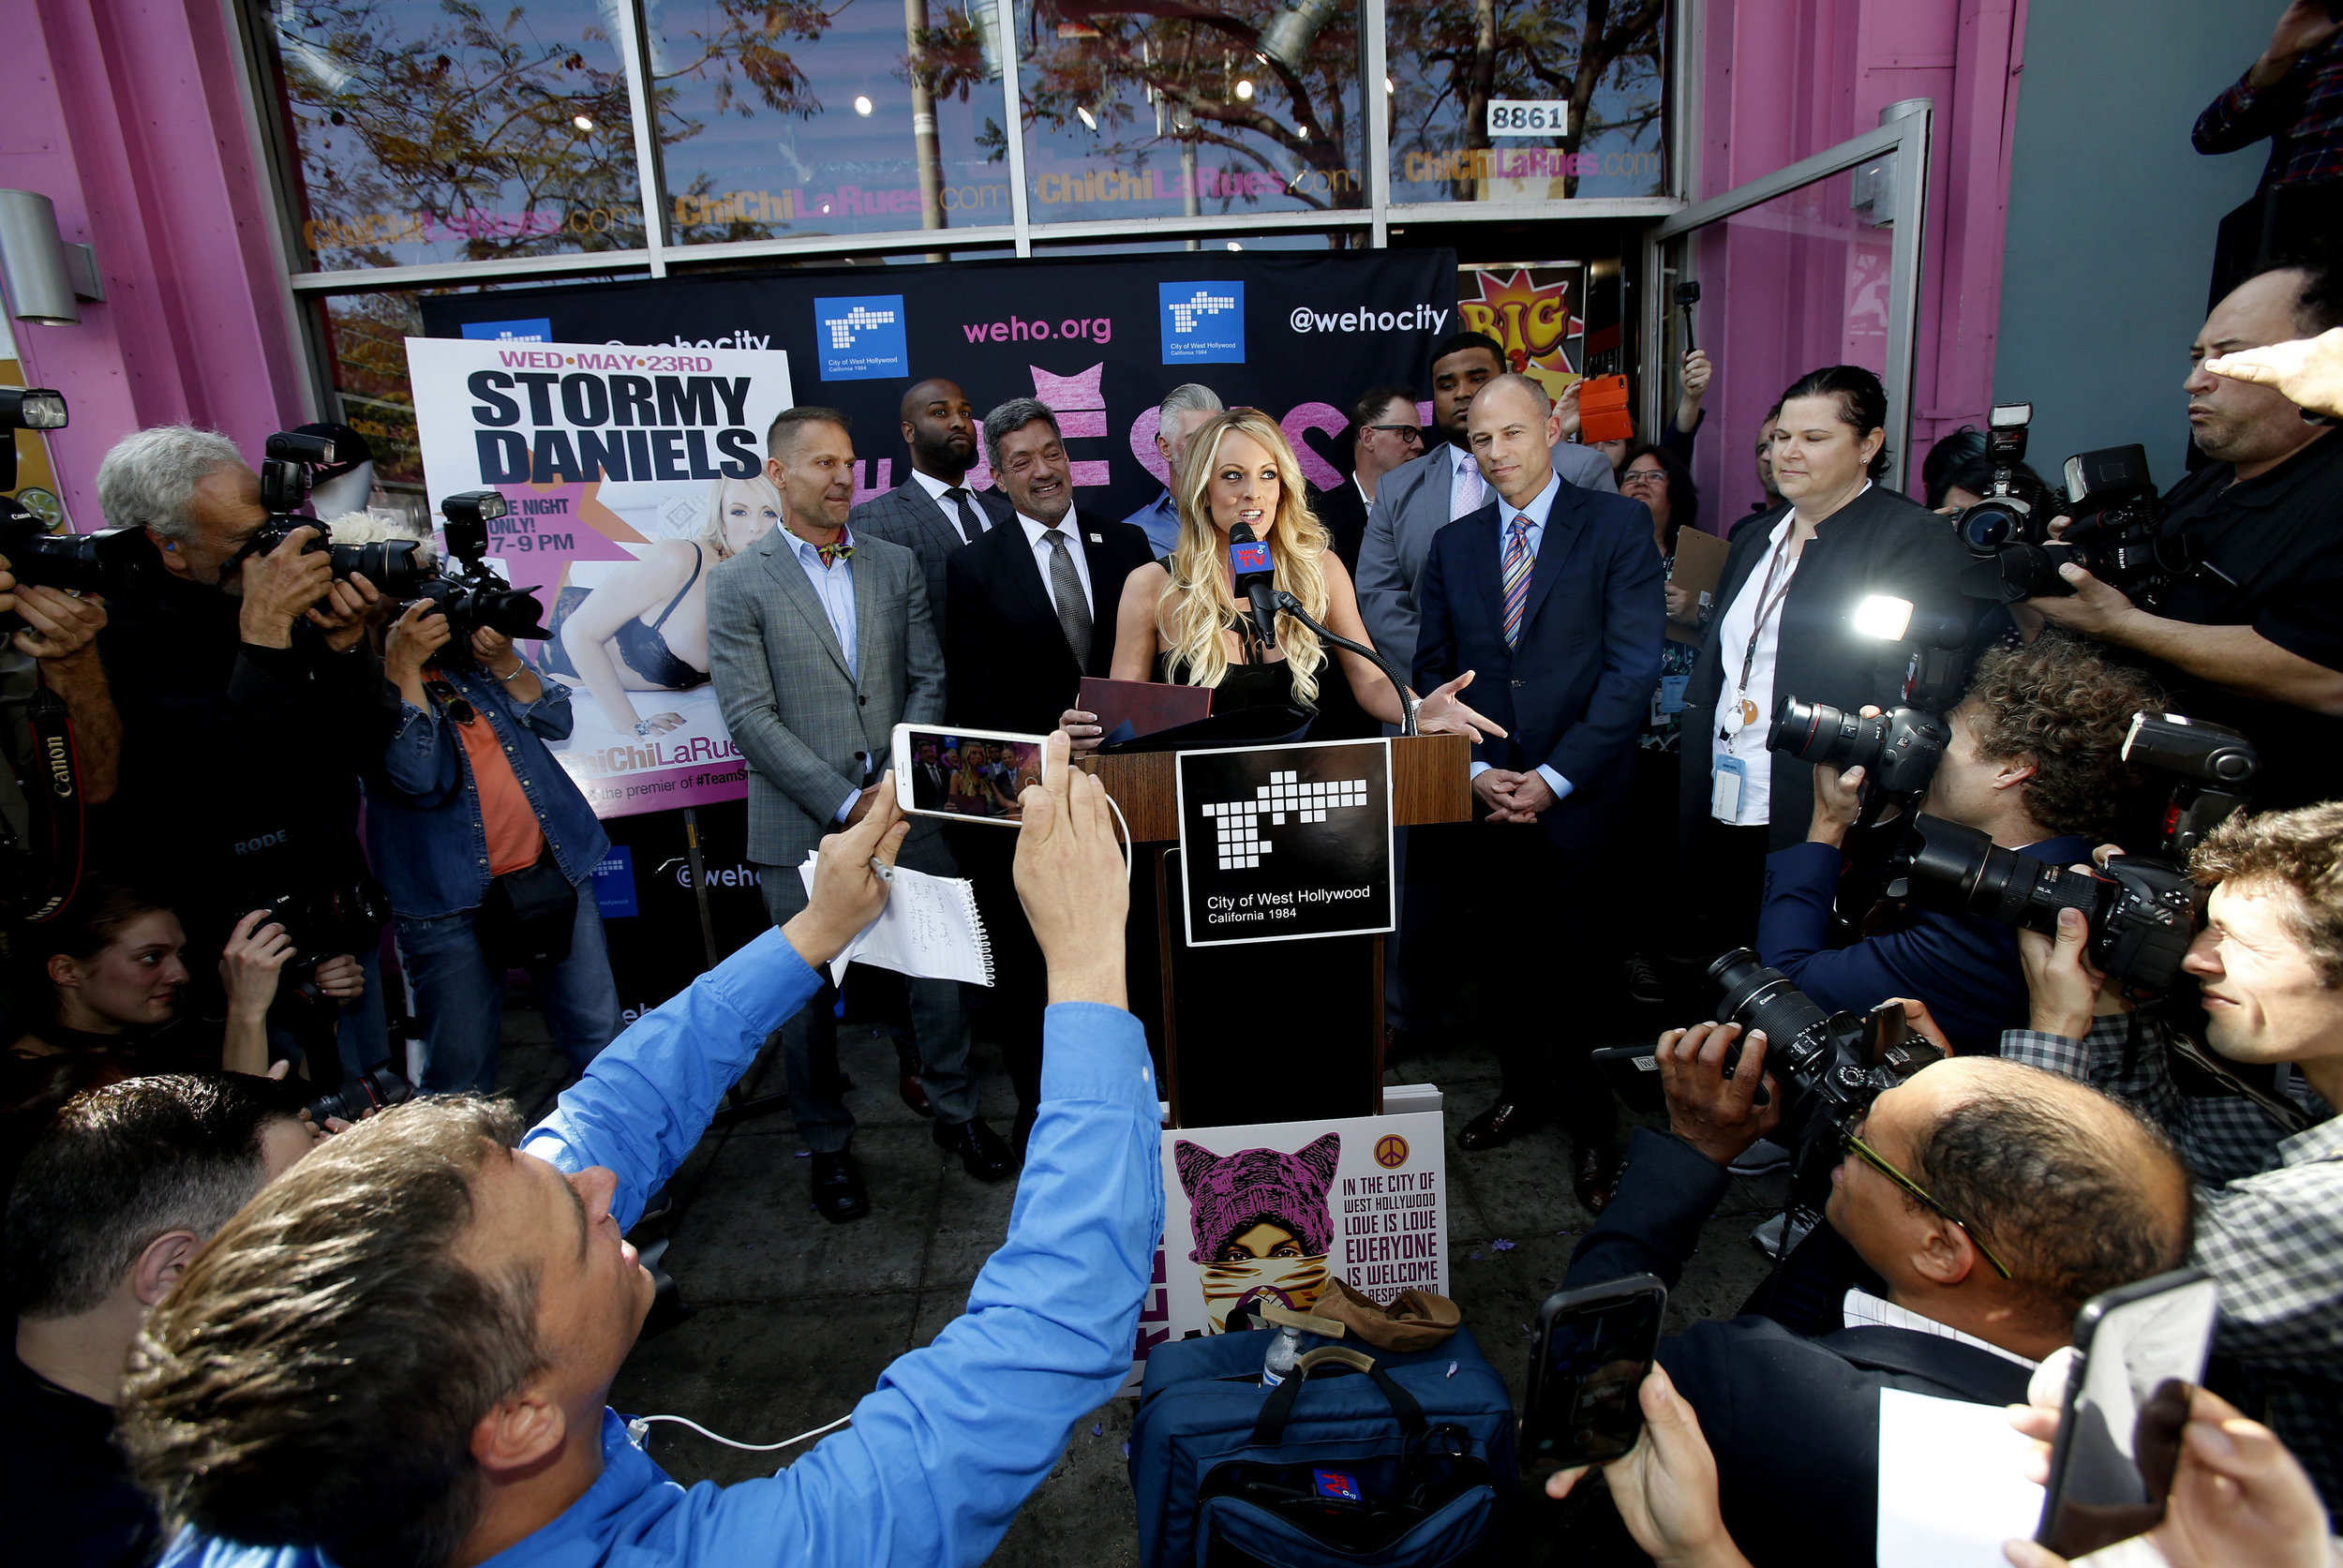 Stormy Daniels, center, speaks during a ceremony for her receiving a City Proclamation and Key to the City on Wednesday, May 23, 2018 in West Hollywood, Calif.